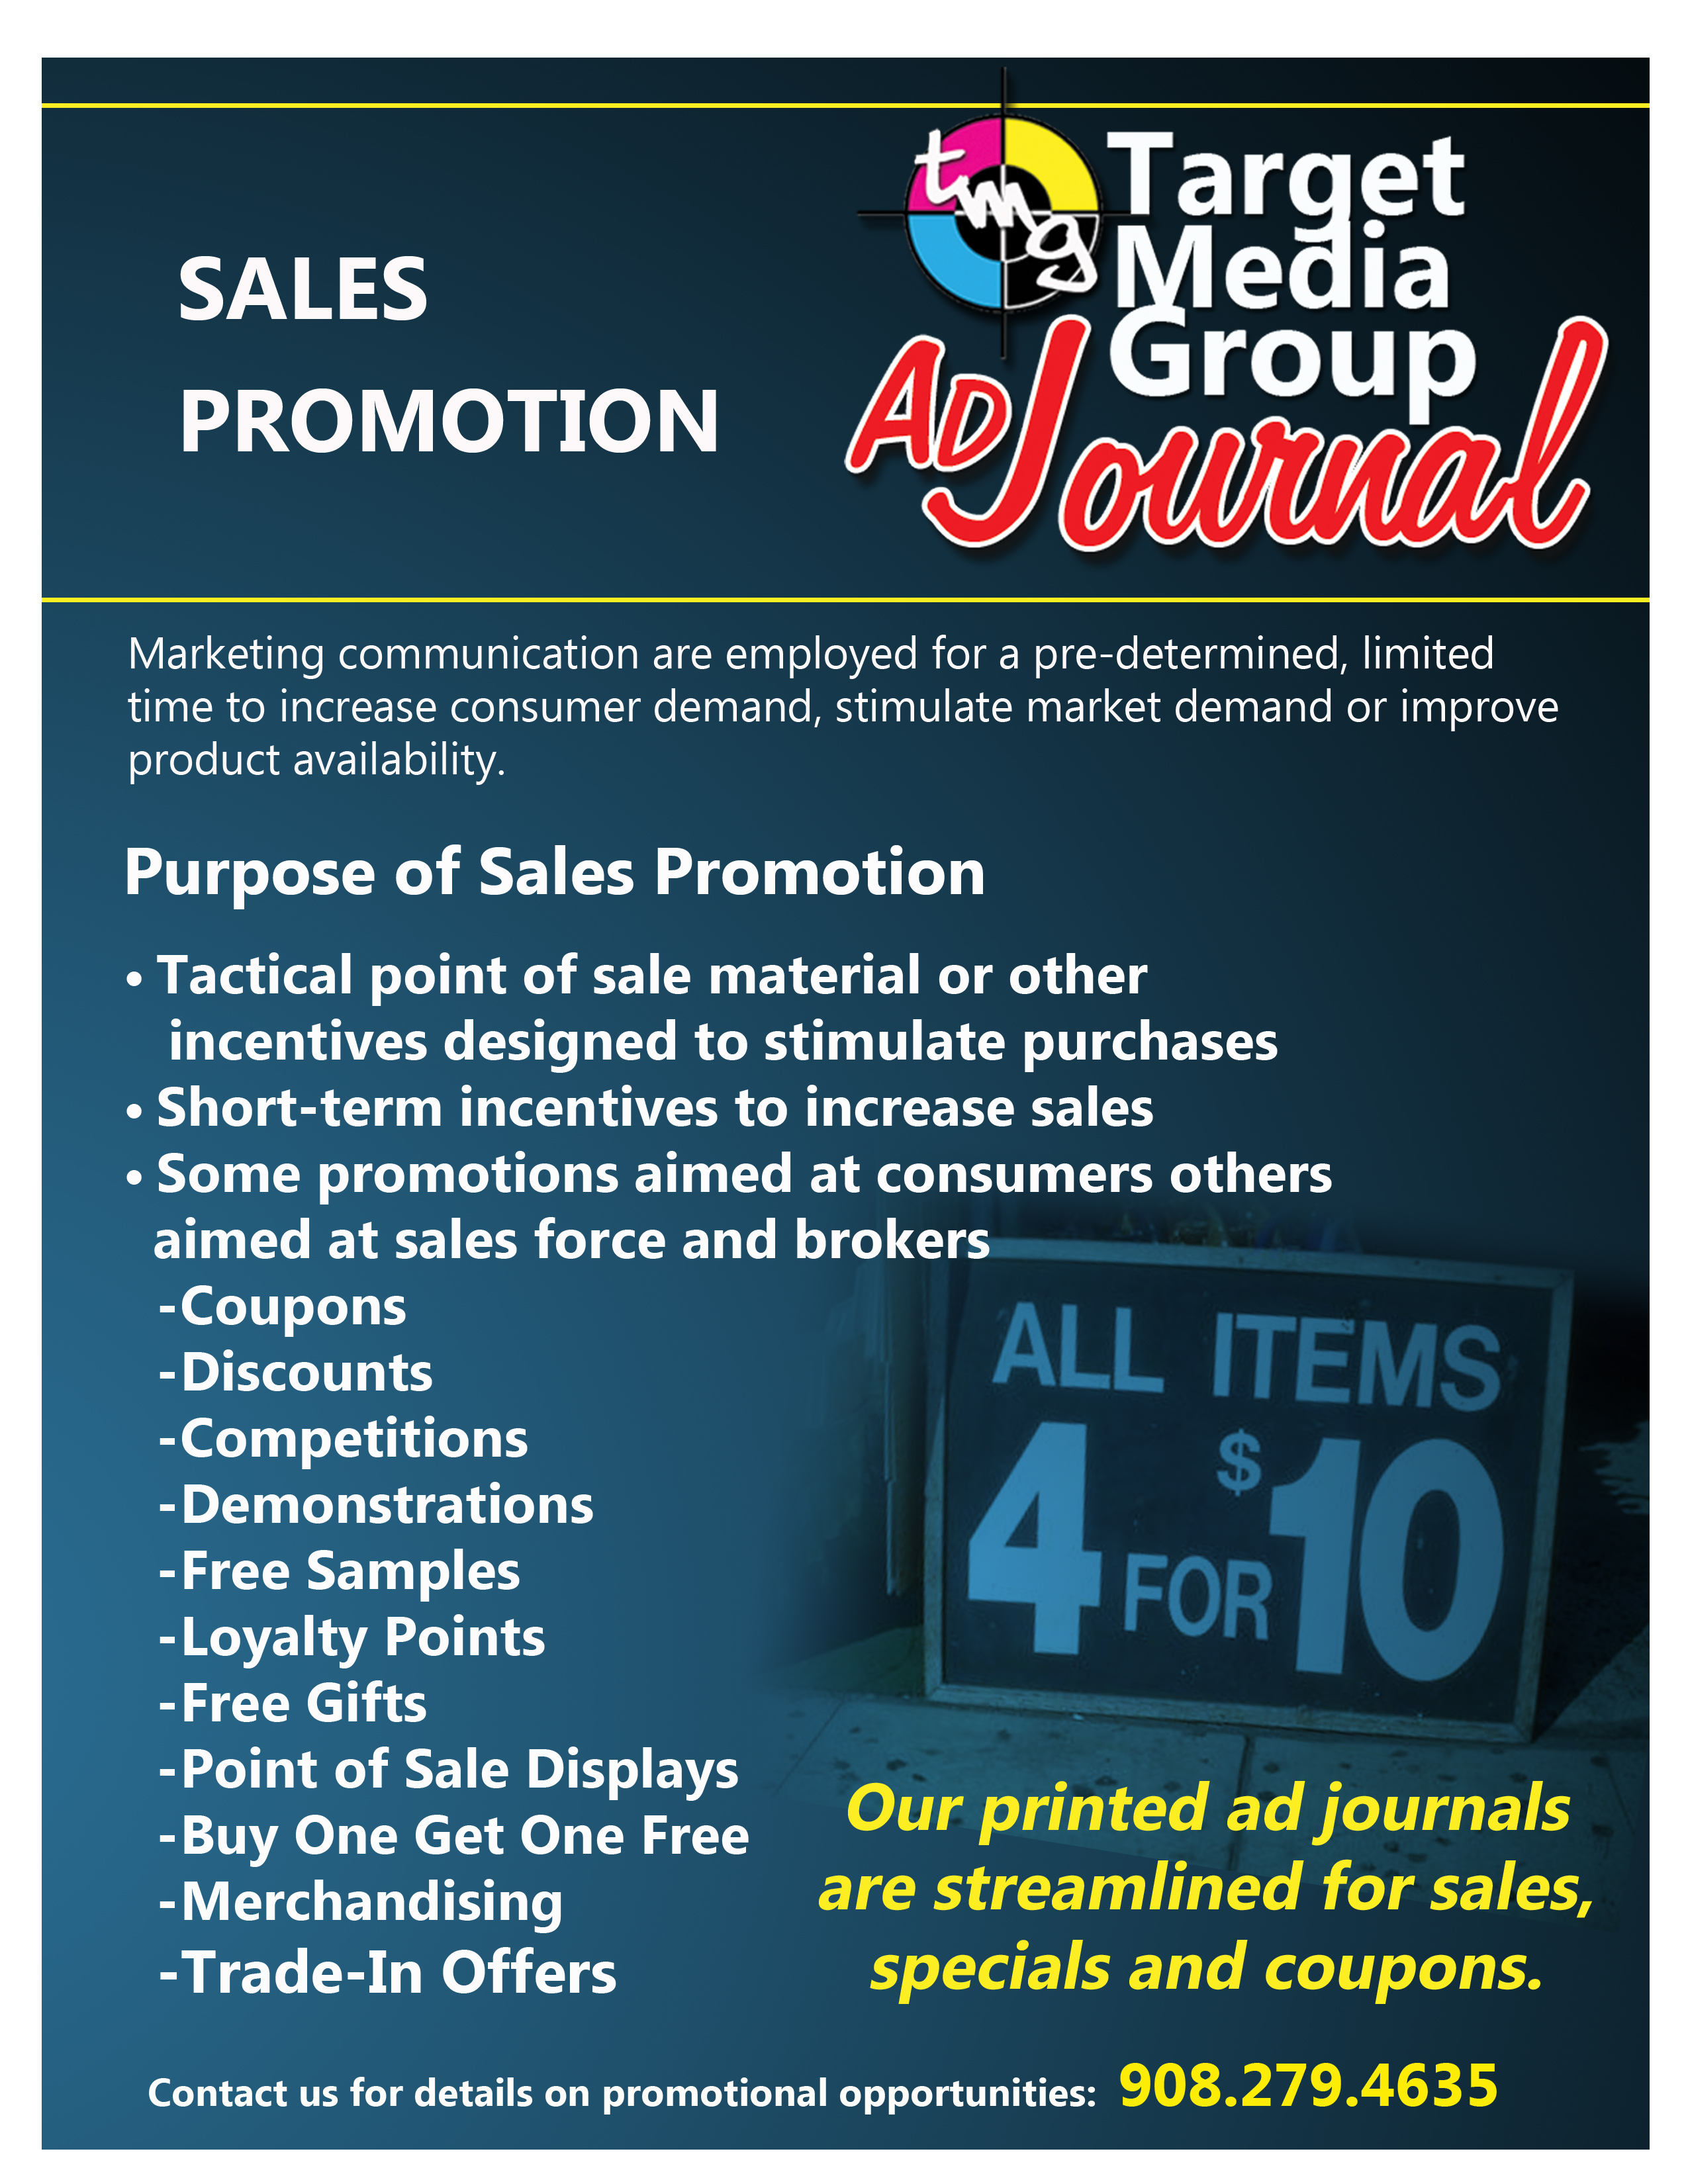 AD_JOURNAL_Sales